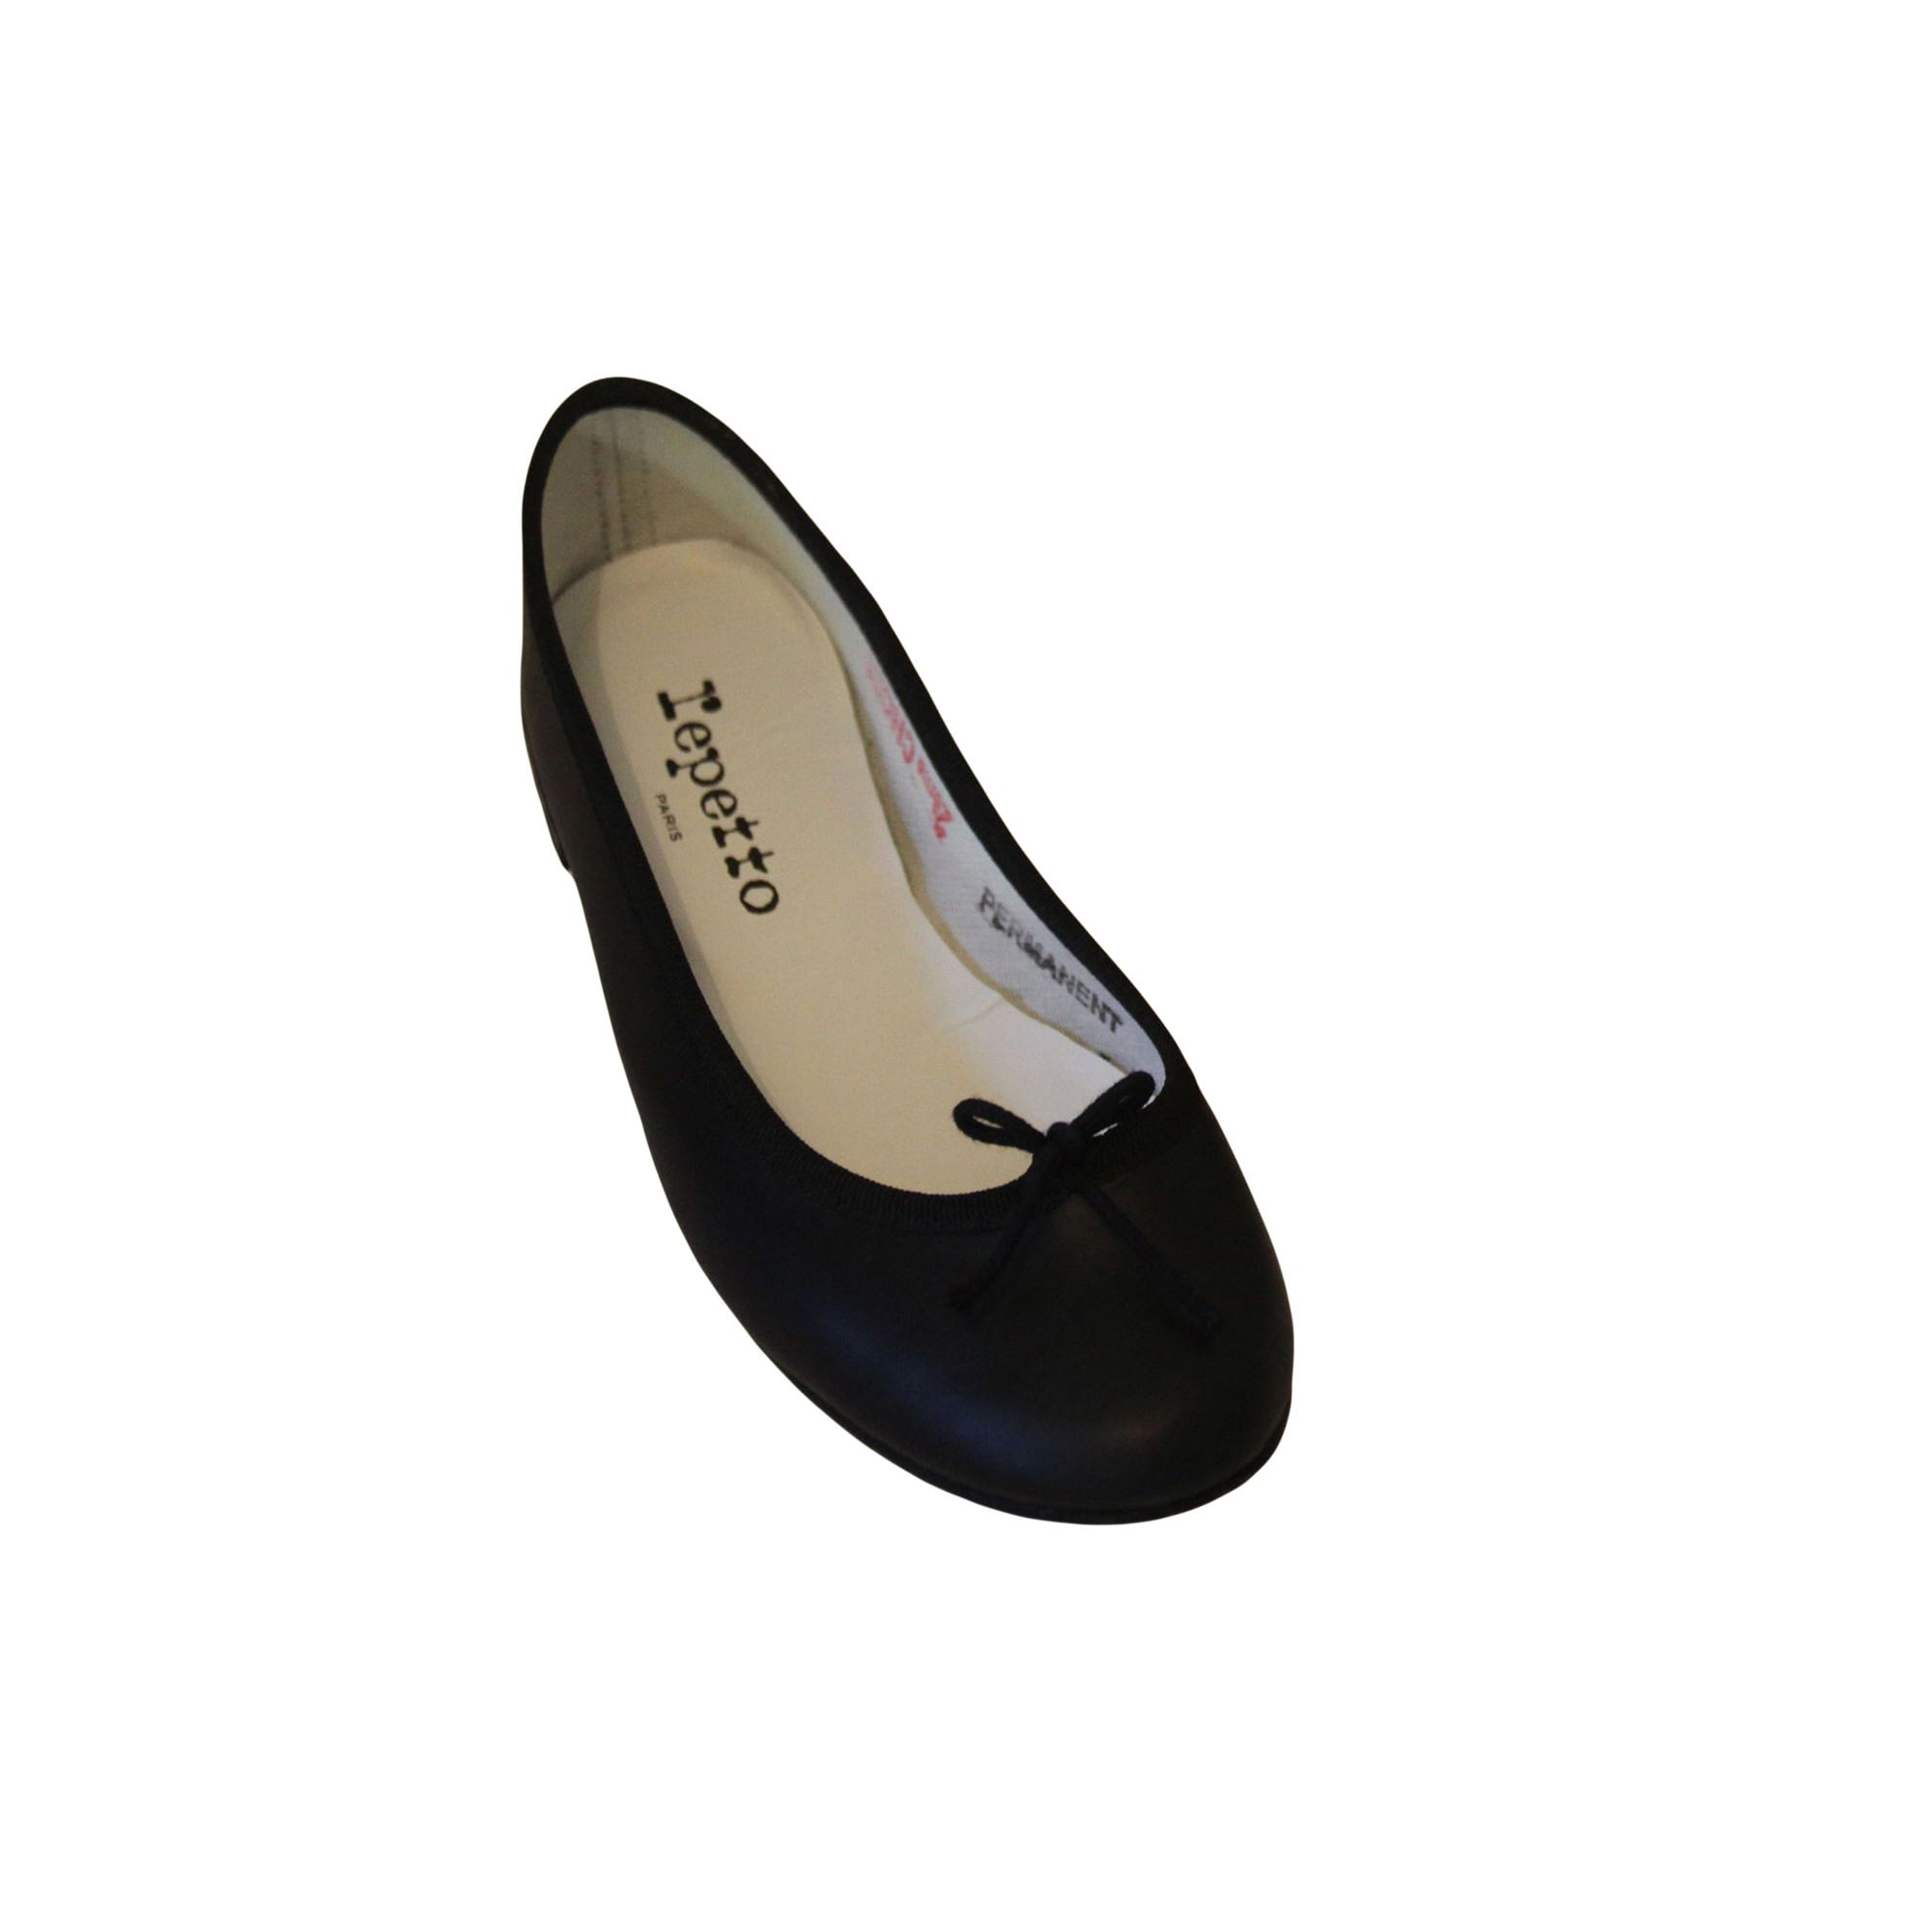 taille 40 a97cf 1adc9 Ballerines REPETTO